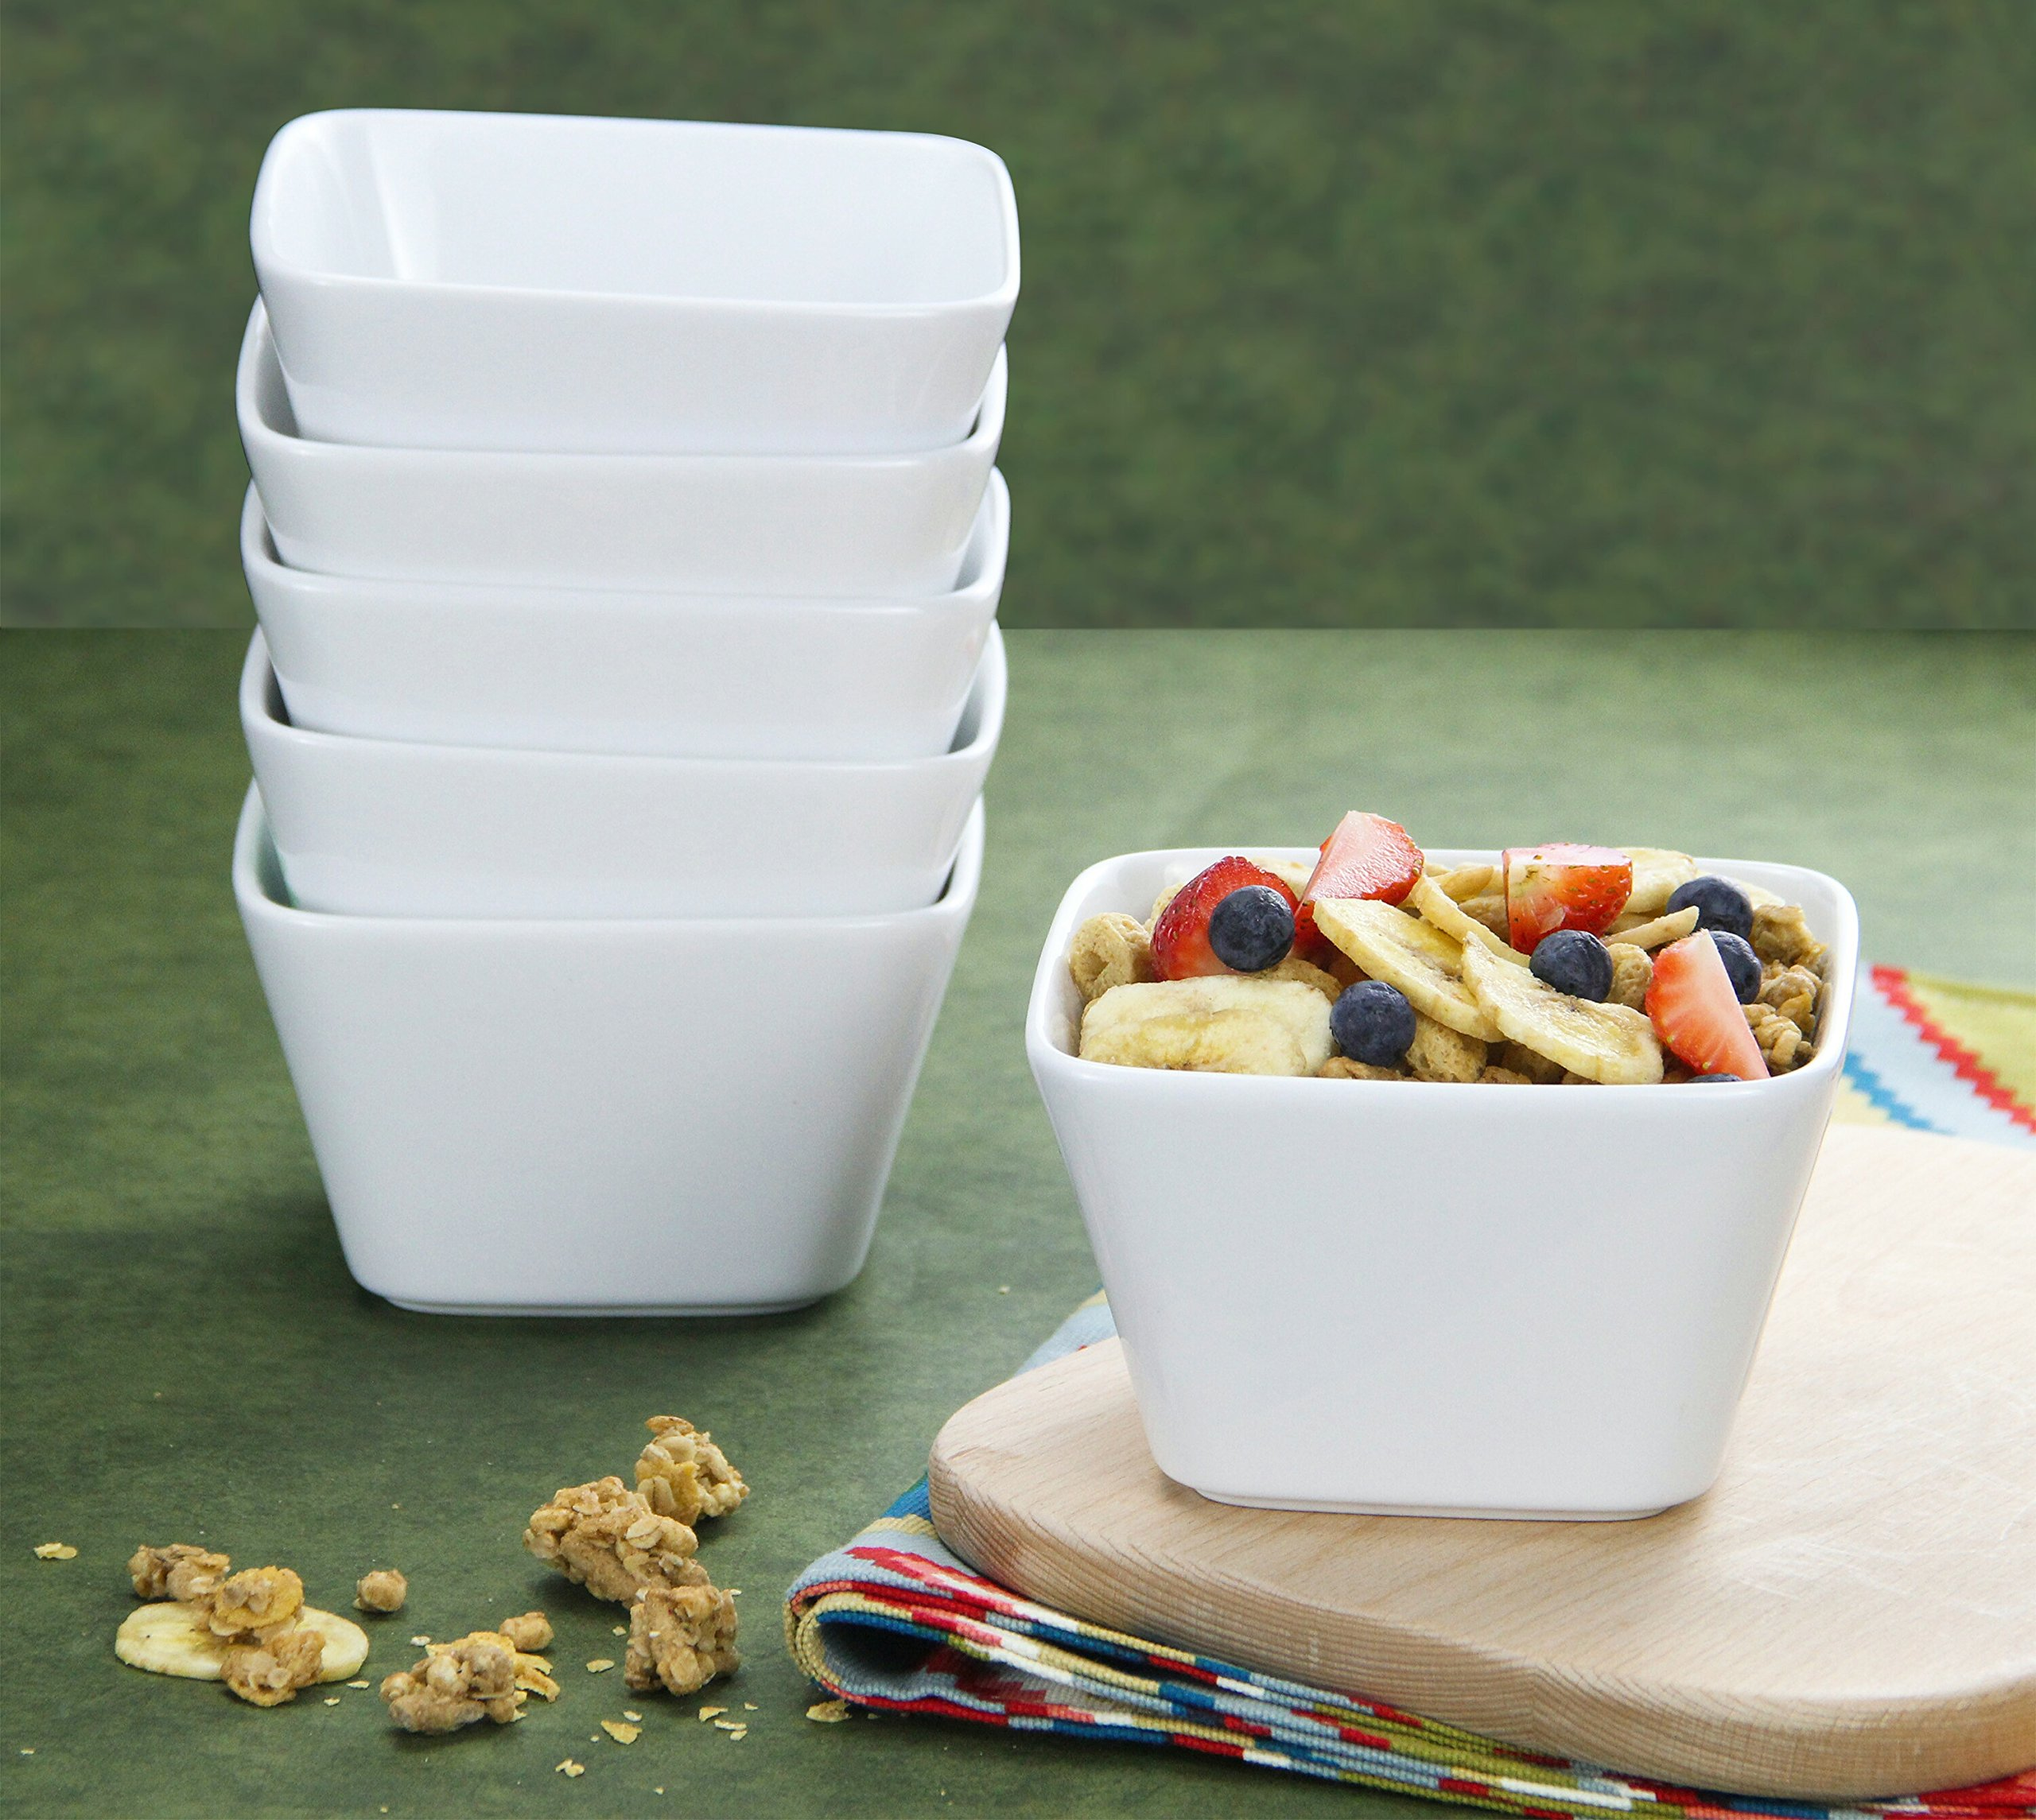 DOWAN 20 Ounce Porcelain Square Cereal Bowls - 6 Packs ,White by DOWAN (Image #7)